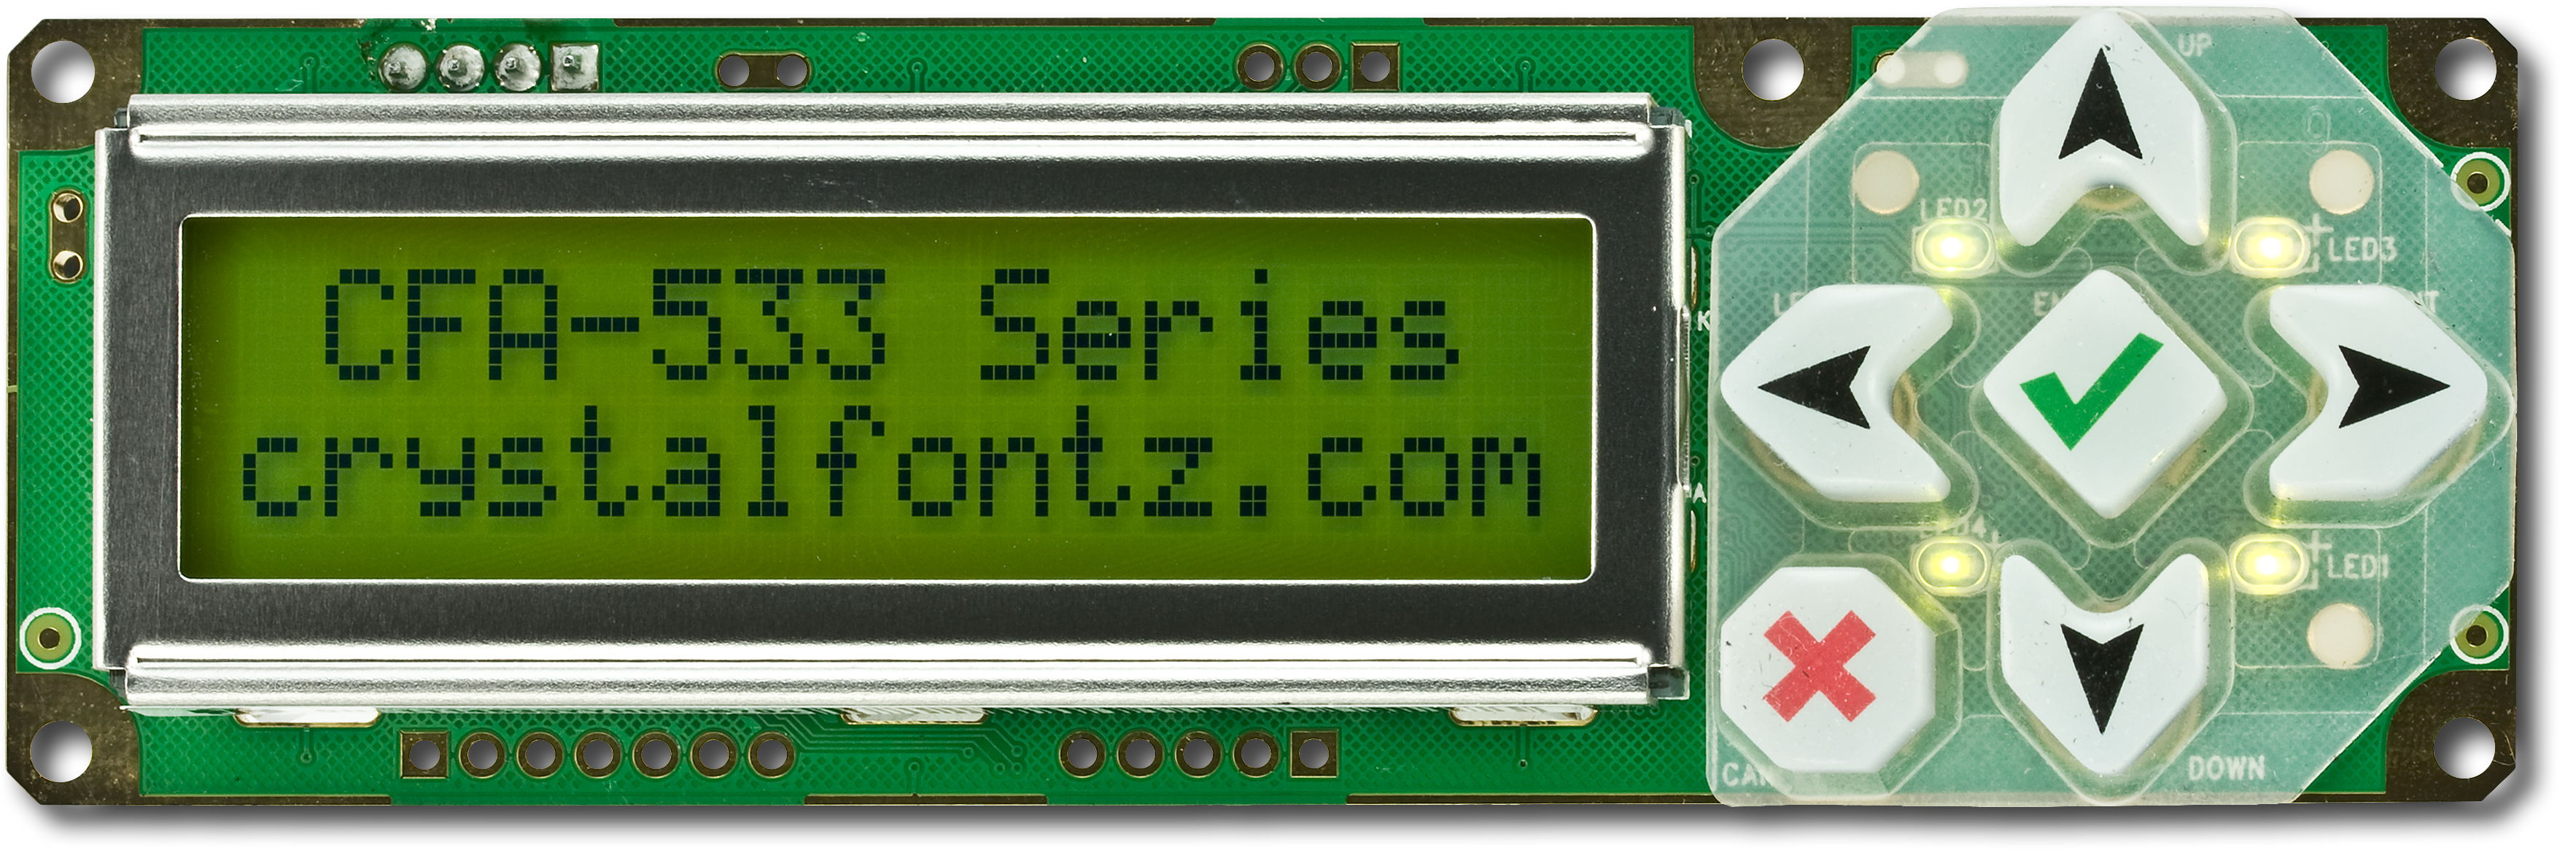 16x2 RS232 Character LCD, Yellow-Green